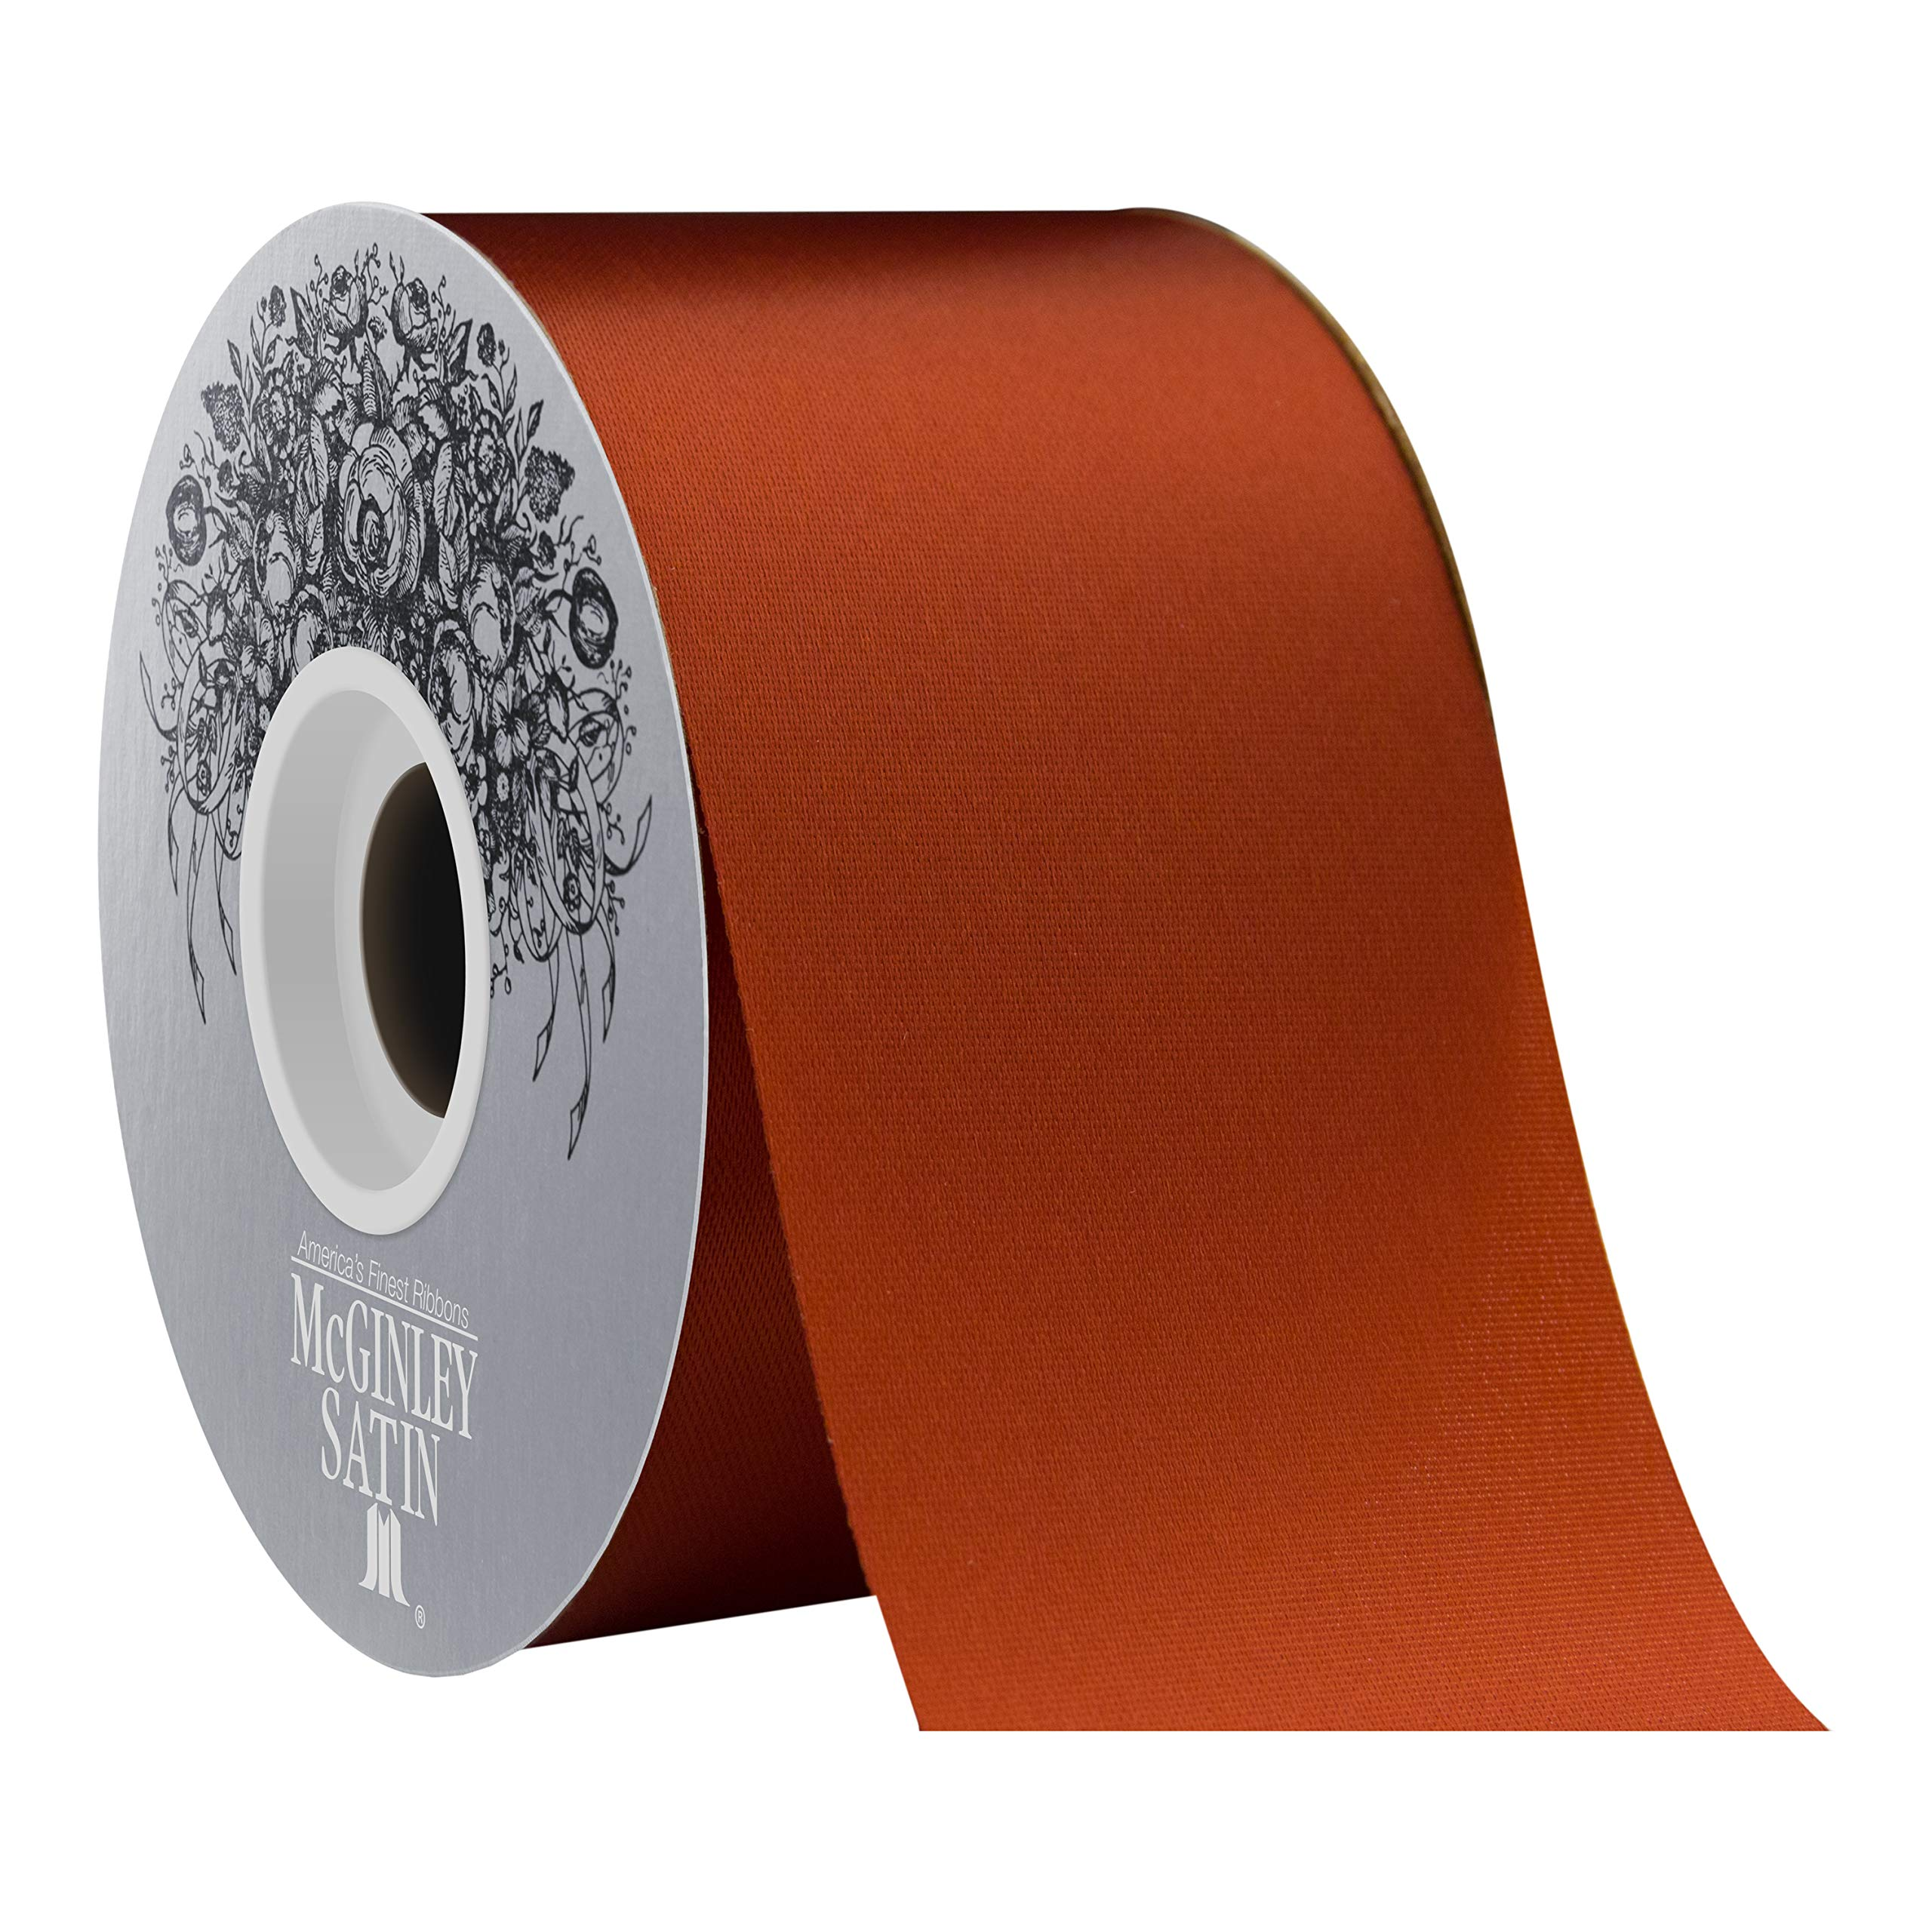 McGinley Mills 2.5'' W Acetate Satin Ribbon, Rust Orange, 50 Yard Spool